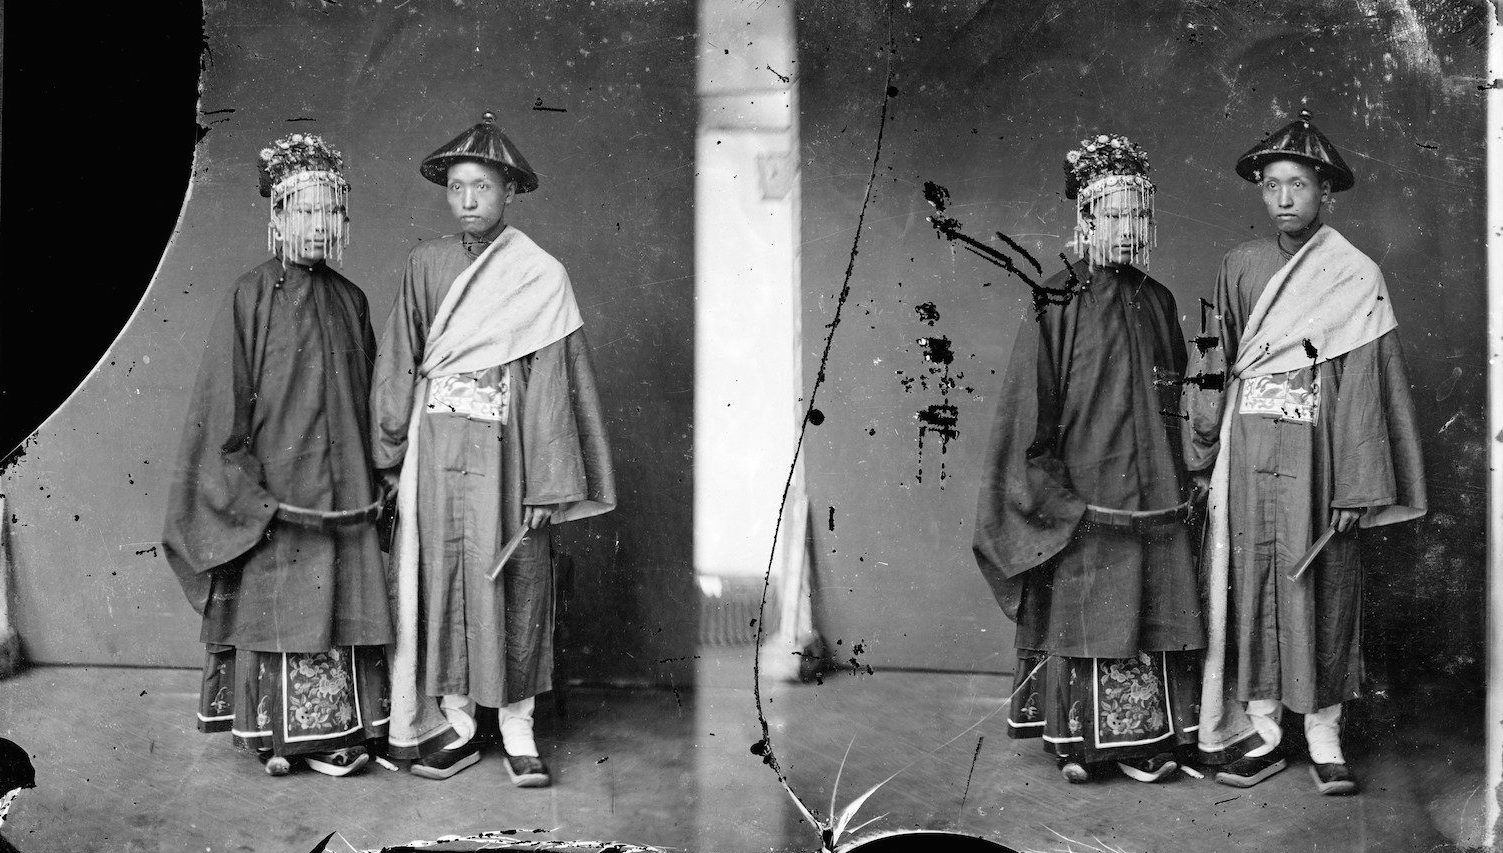 L0056859 Credit: Wellcome Library, London Canton (Guangzhou), Kwangtung province, China: a Cantonese bride and groom. Photograph by John Thomson, 1869.